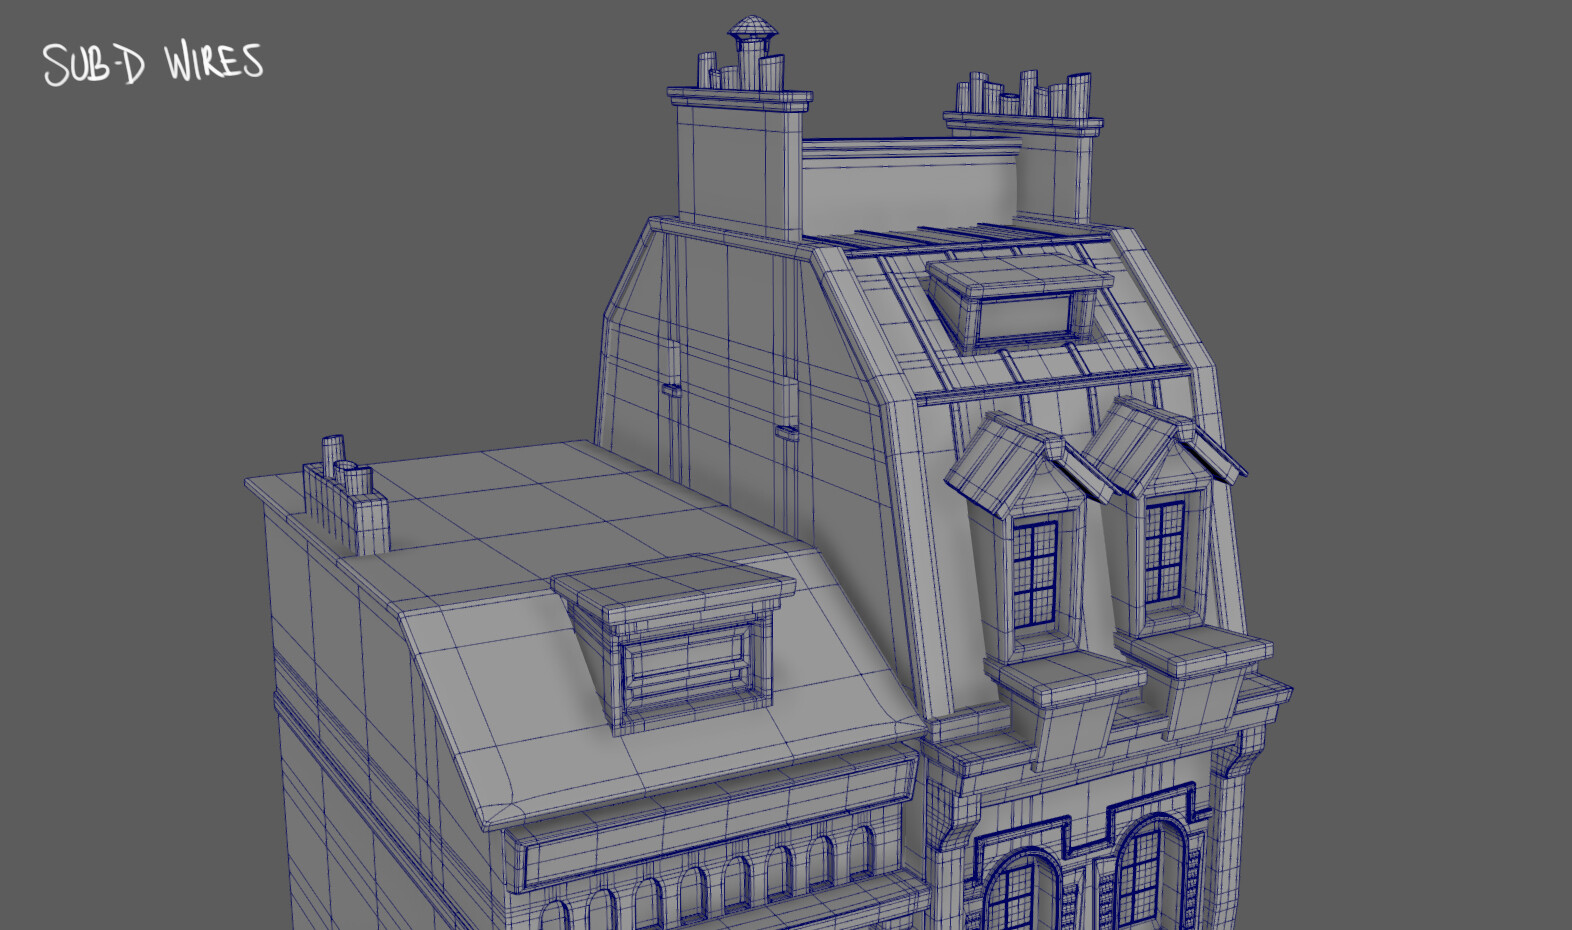 Building asset modeled in Maya 2019 based on concept art by Matias Hannecke > https://hannecke.tumblr.com/